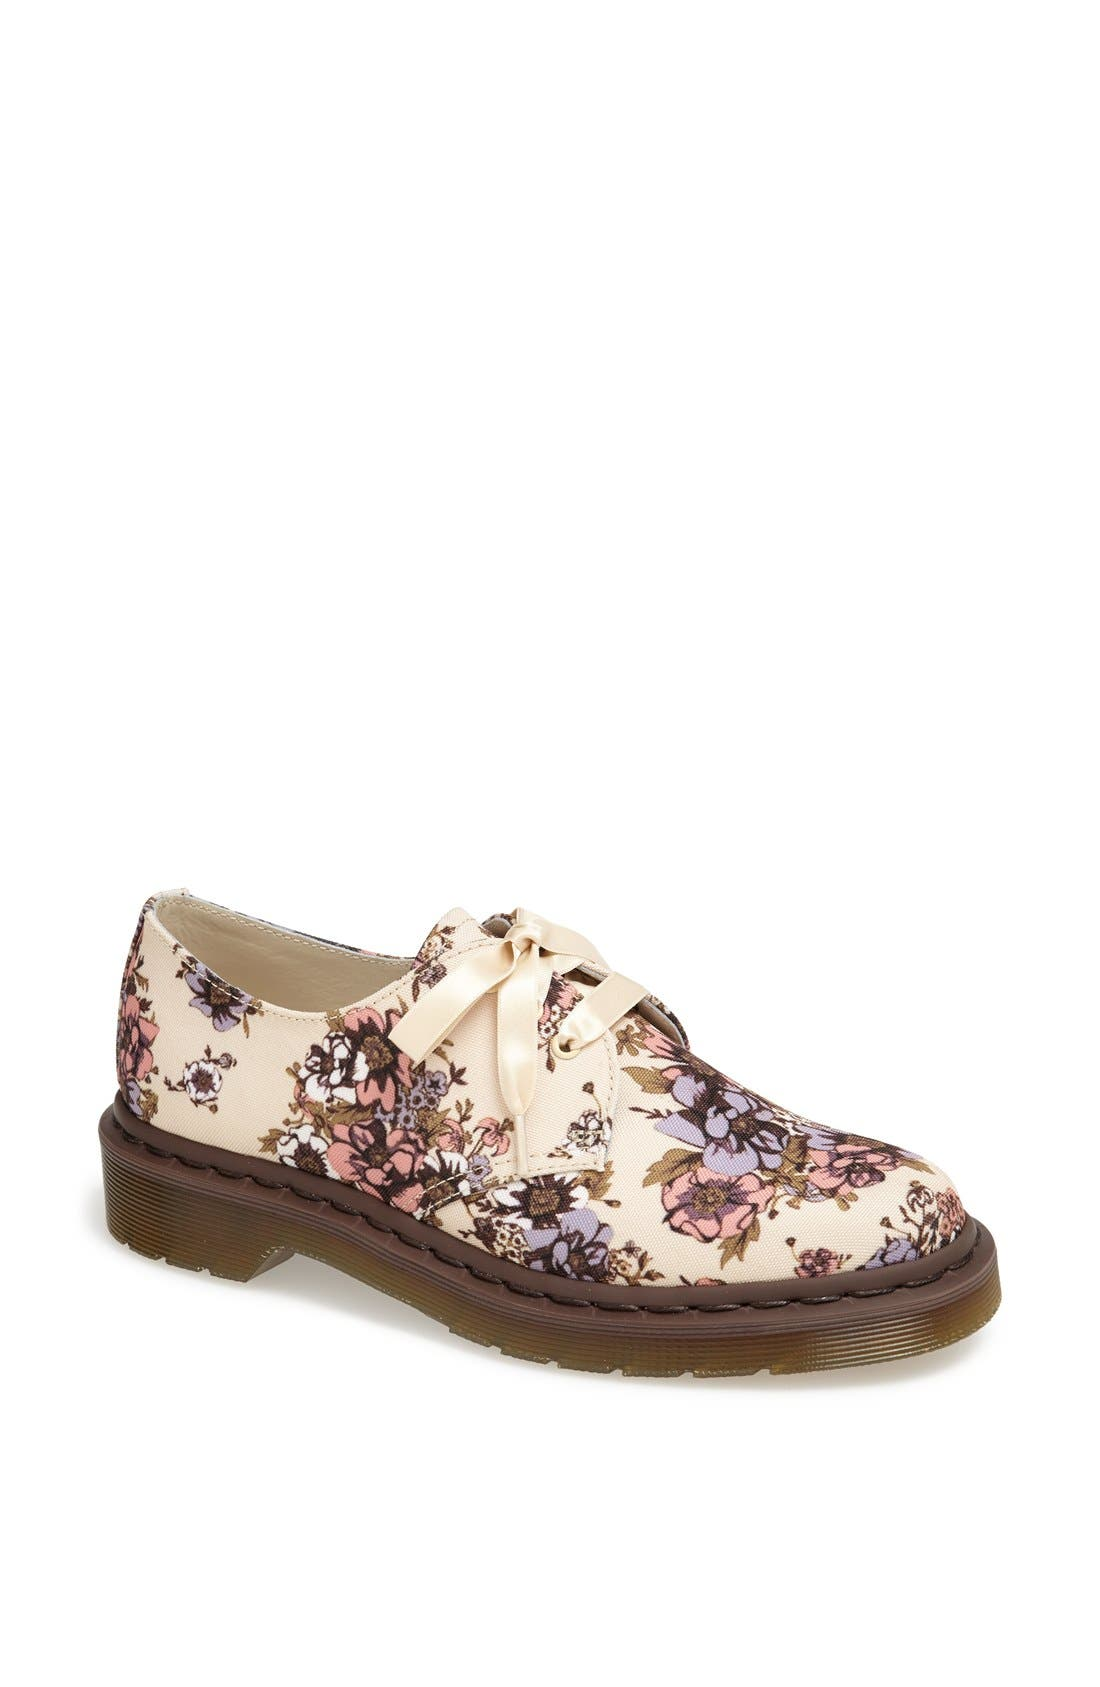 Main Image - Dr. Martens 3-Eye Oxford (Women)